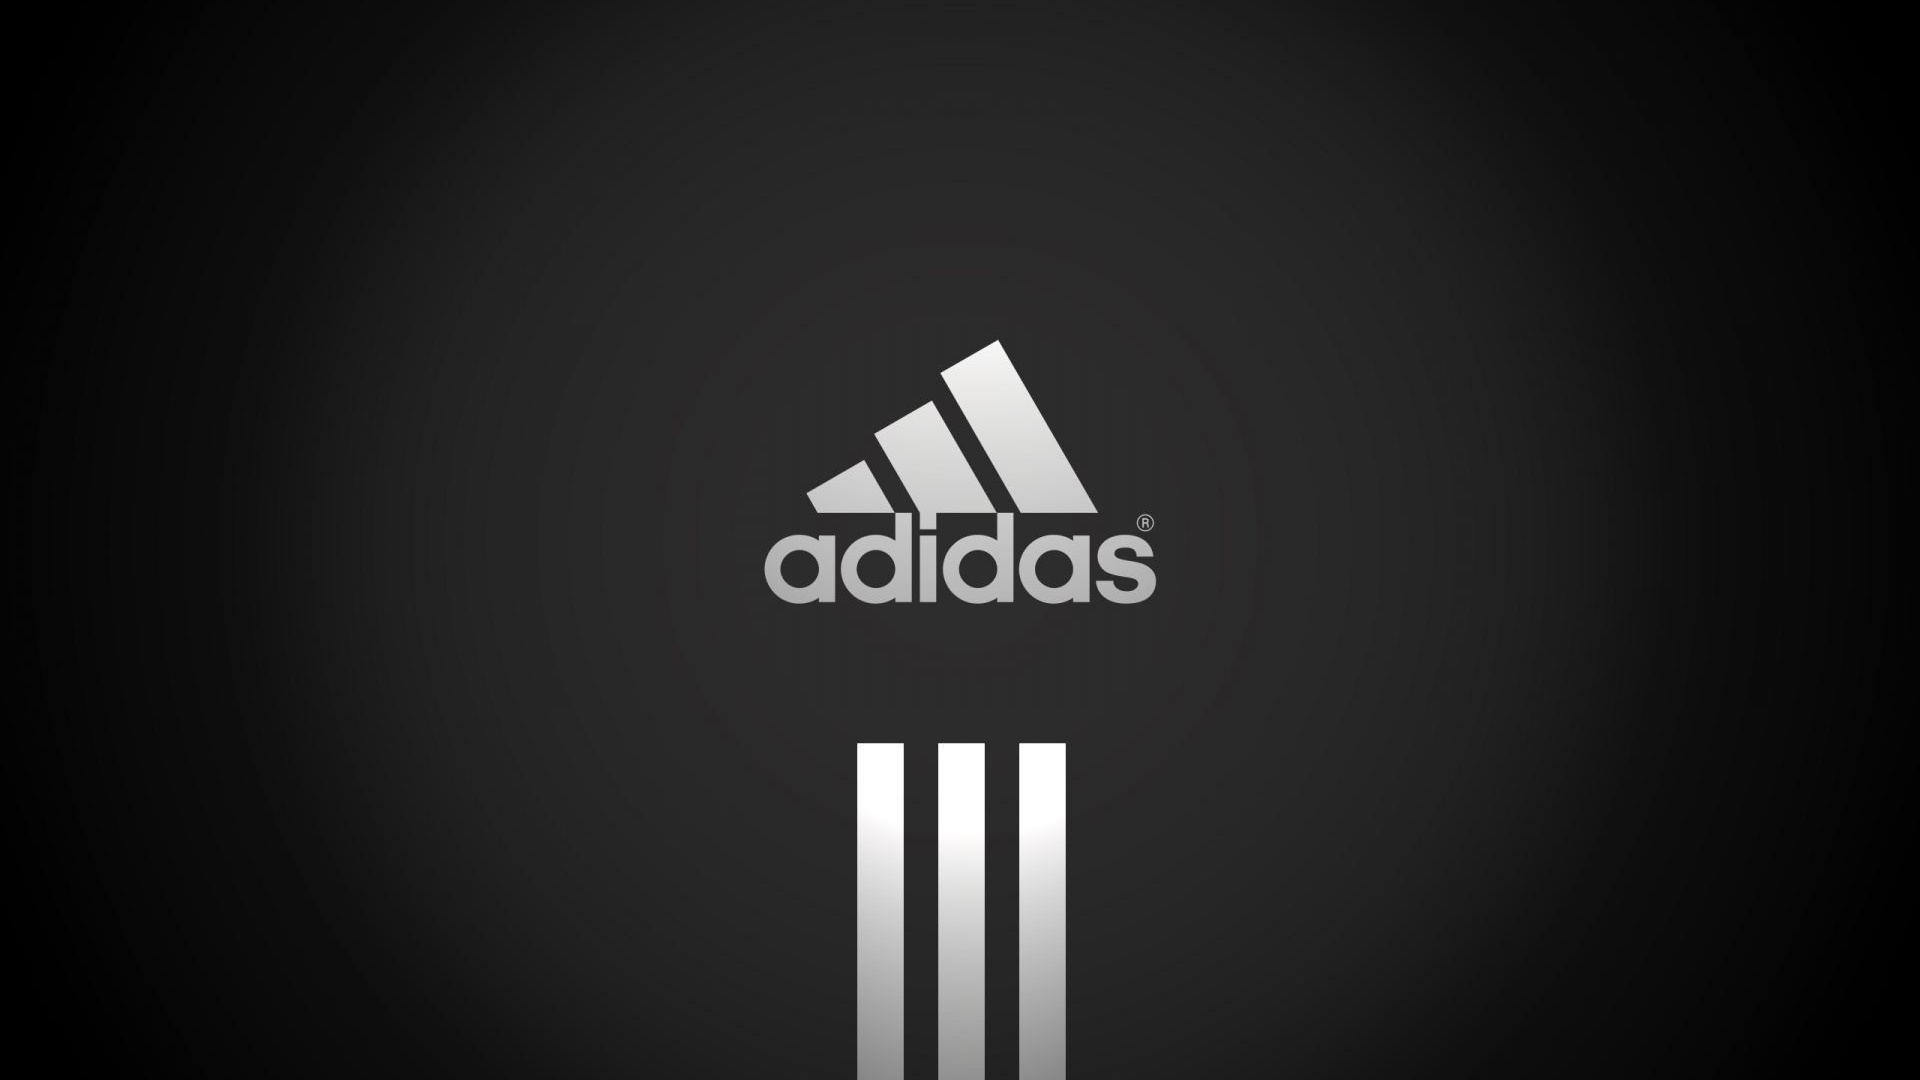 Adidas Black 1080p HD Logo Desktop Wallpaper | Places to Visit